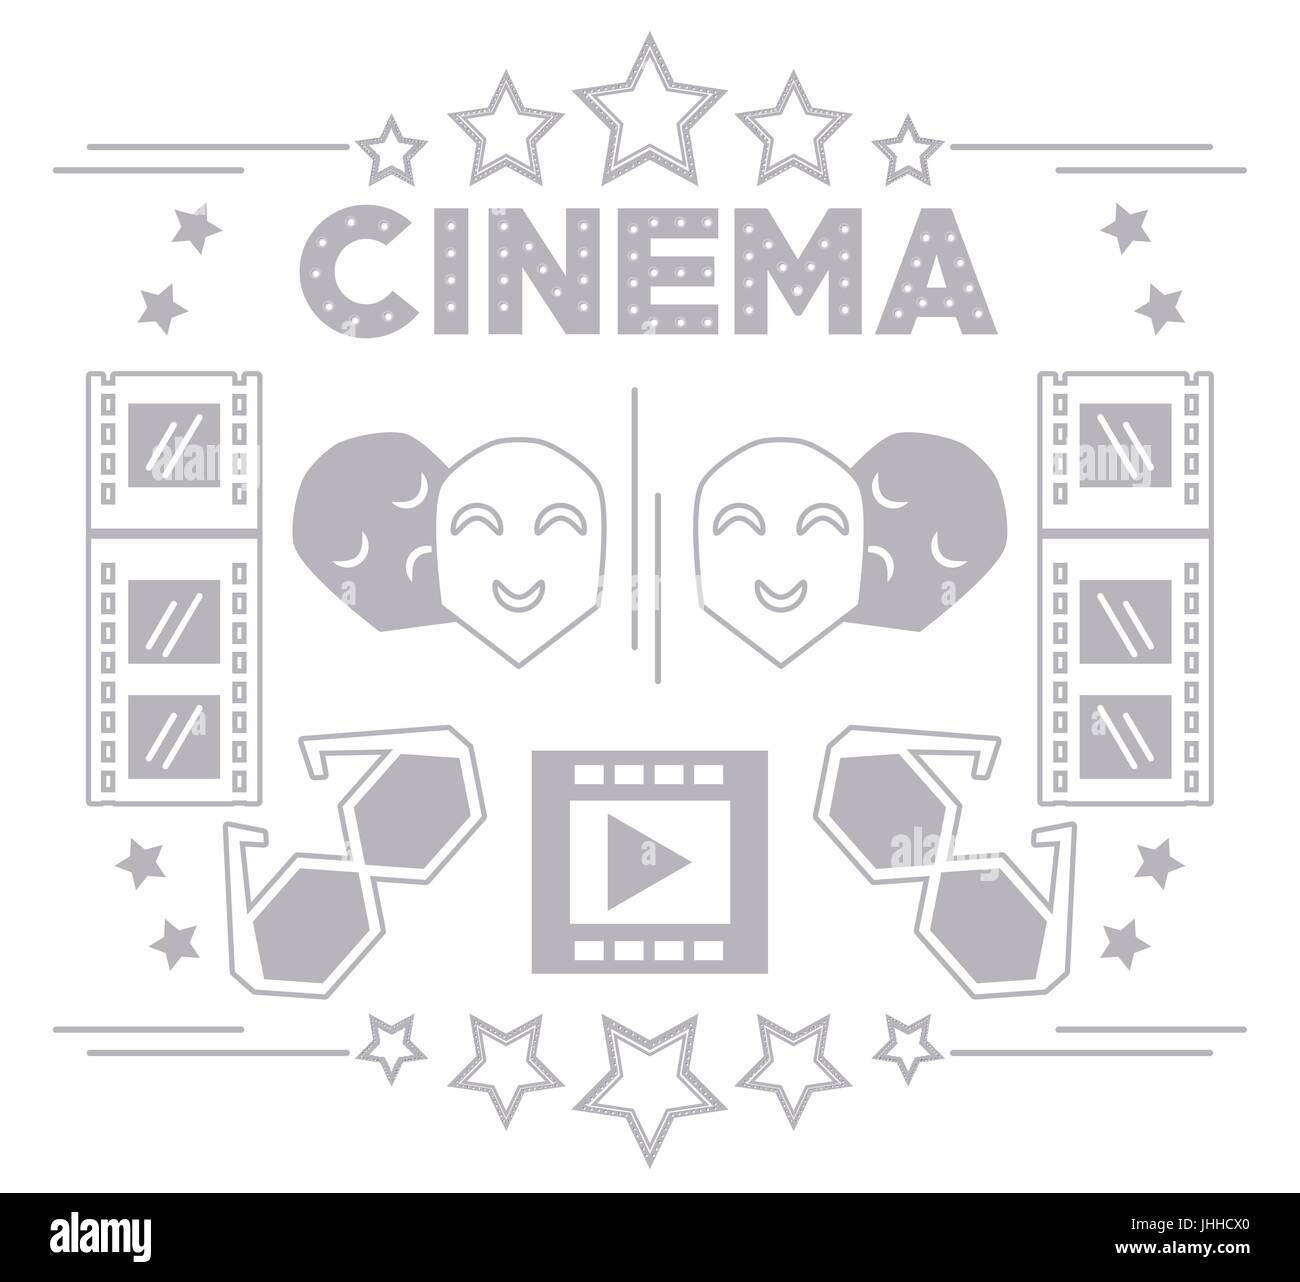 cinema short film production tools background - Stock Image